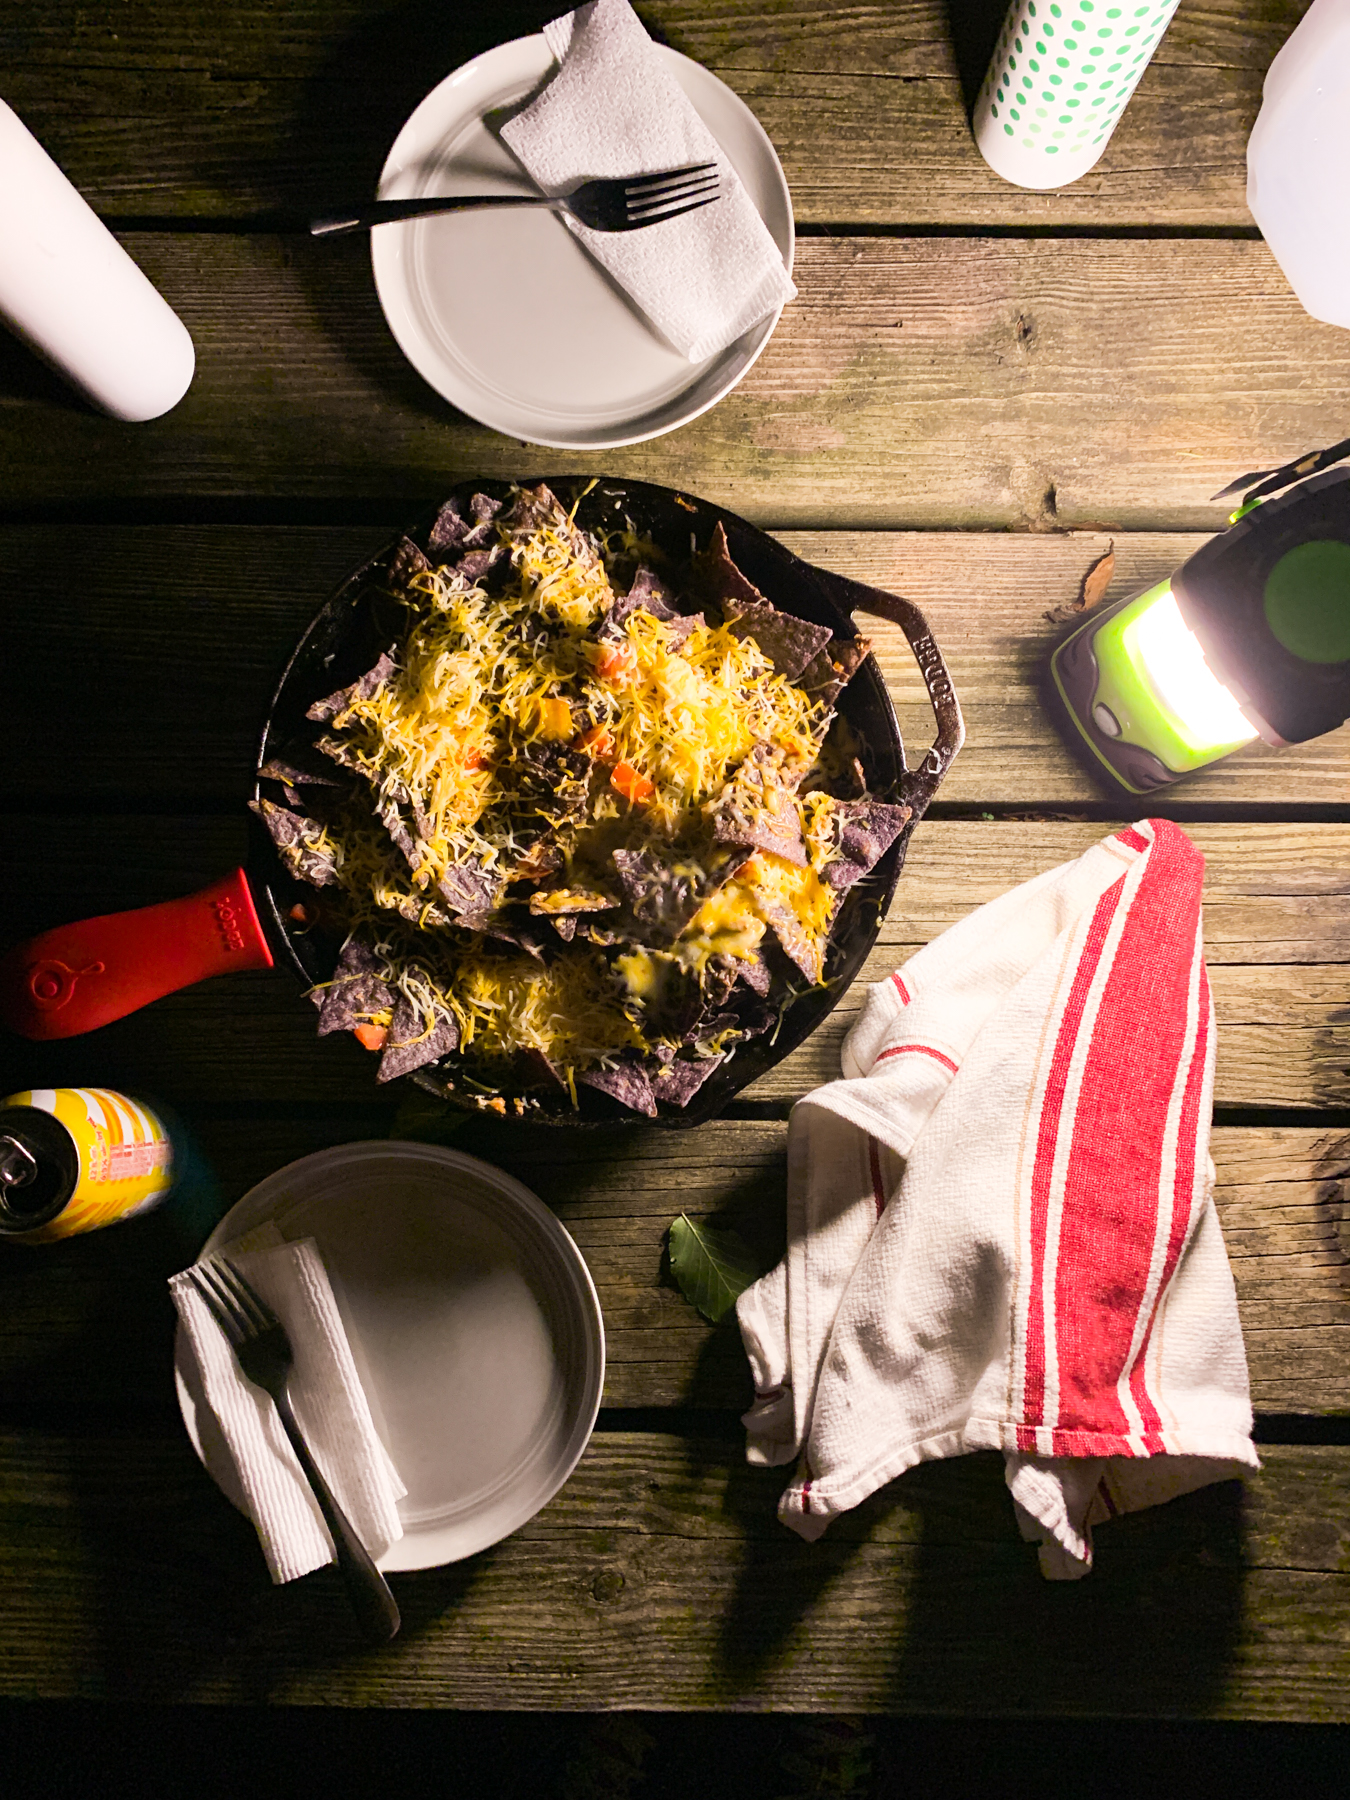 nachos in a cast iron skillet at night while camping on a picnic table